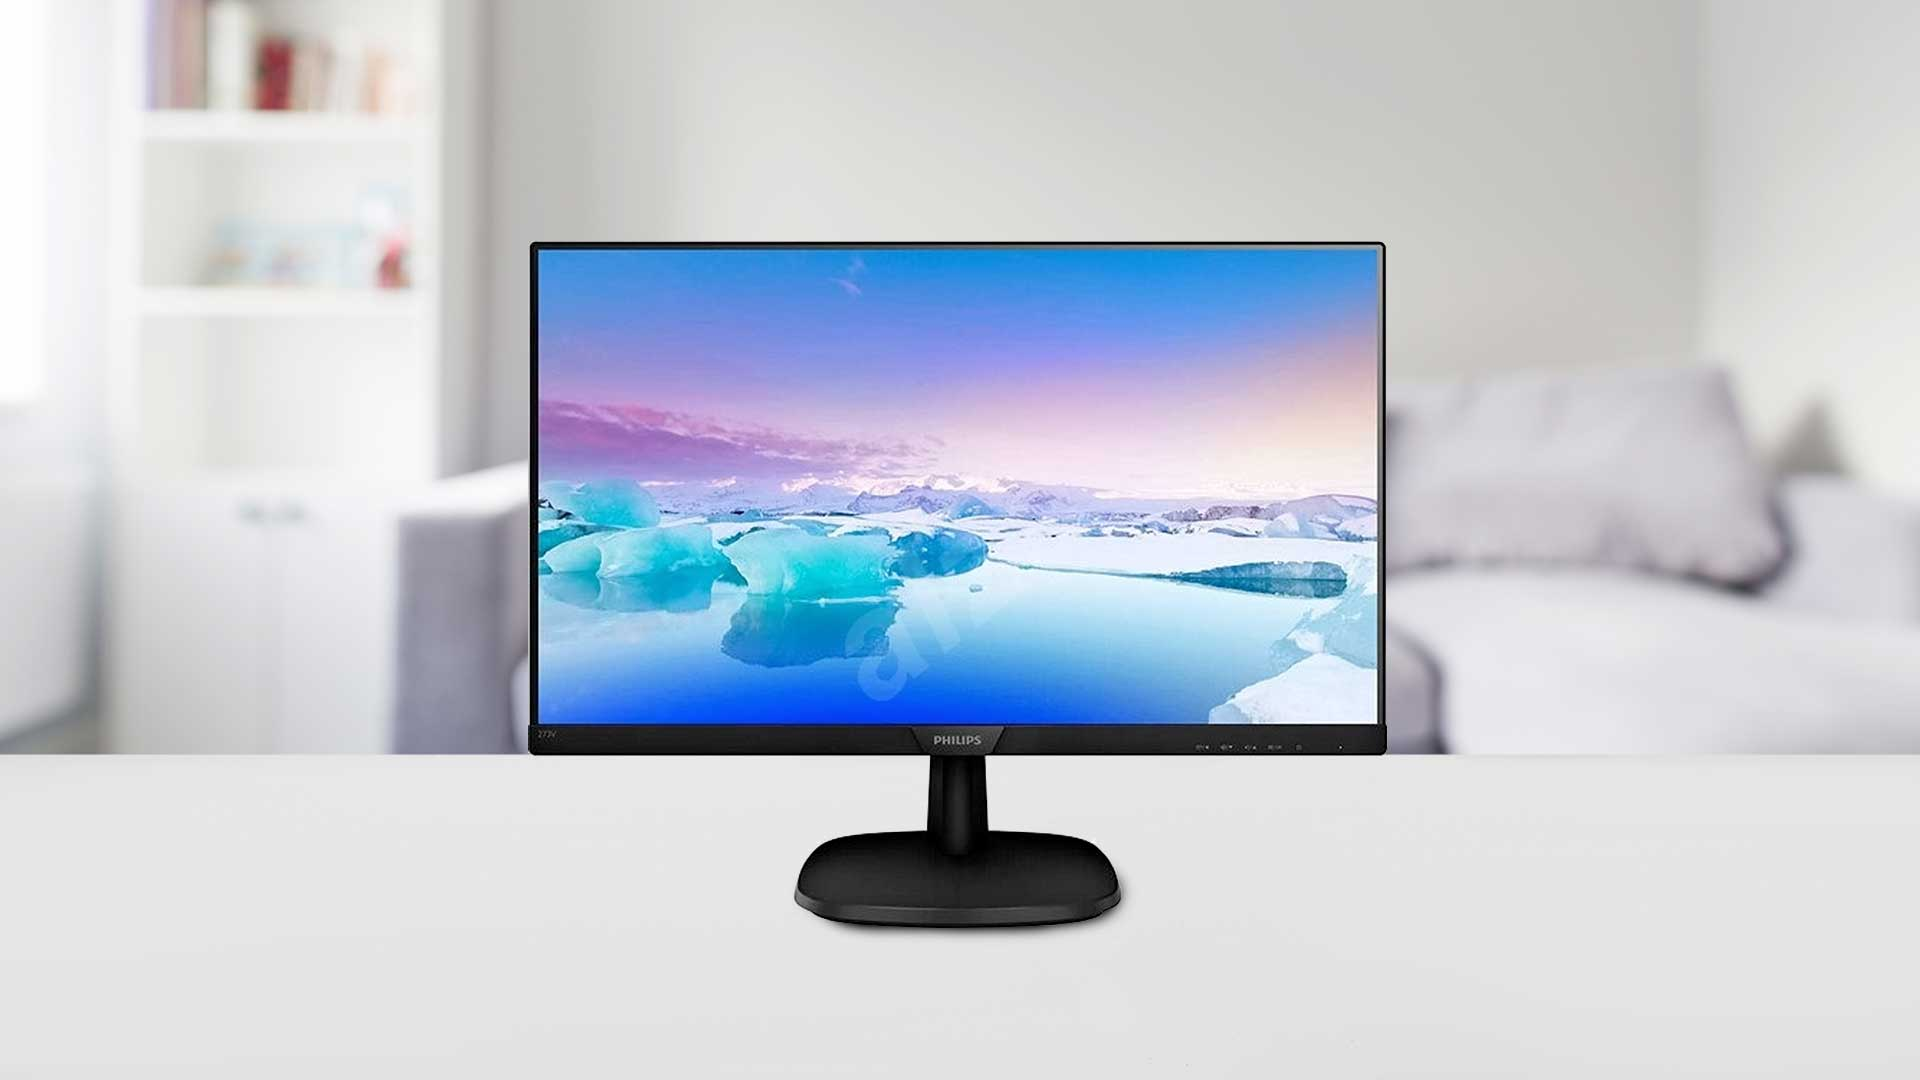 image relates to LCD monitor screen